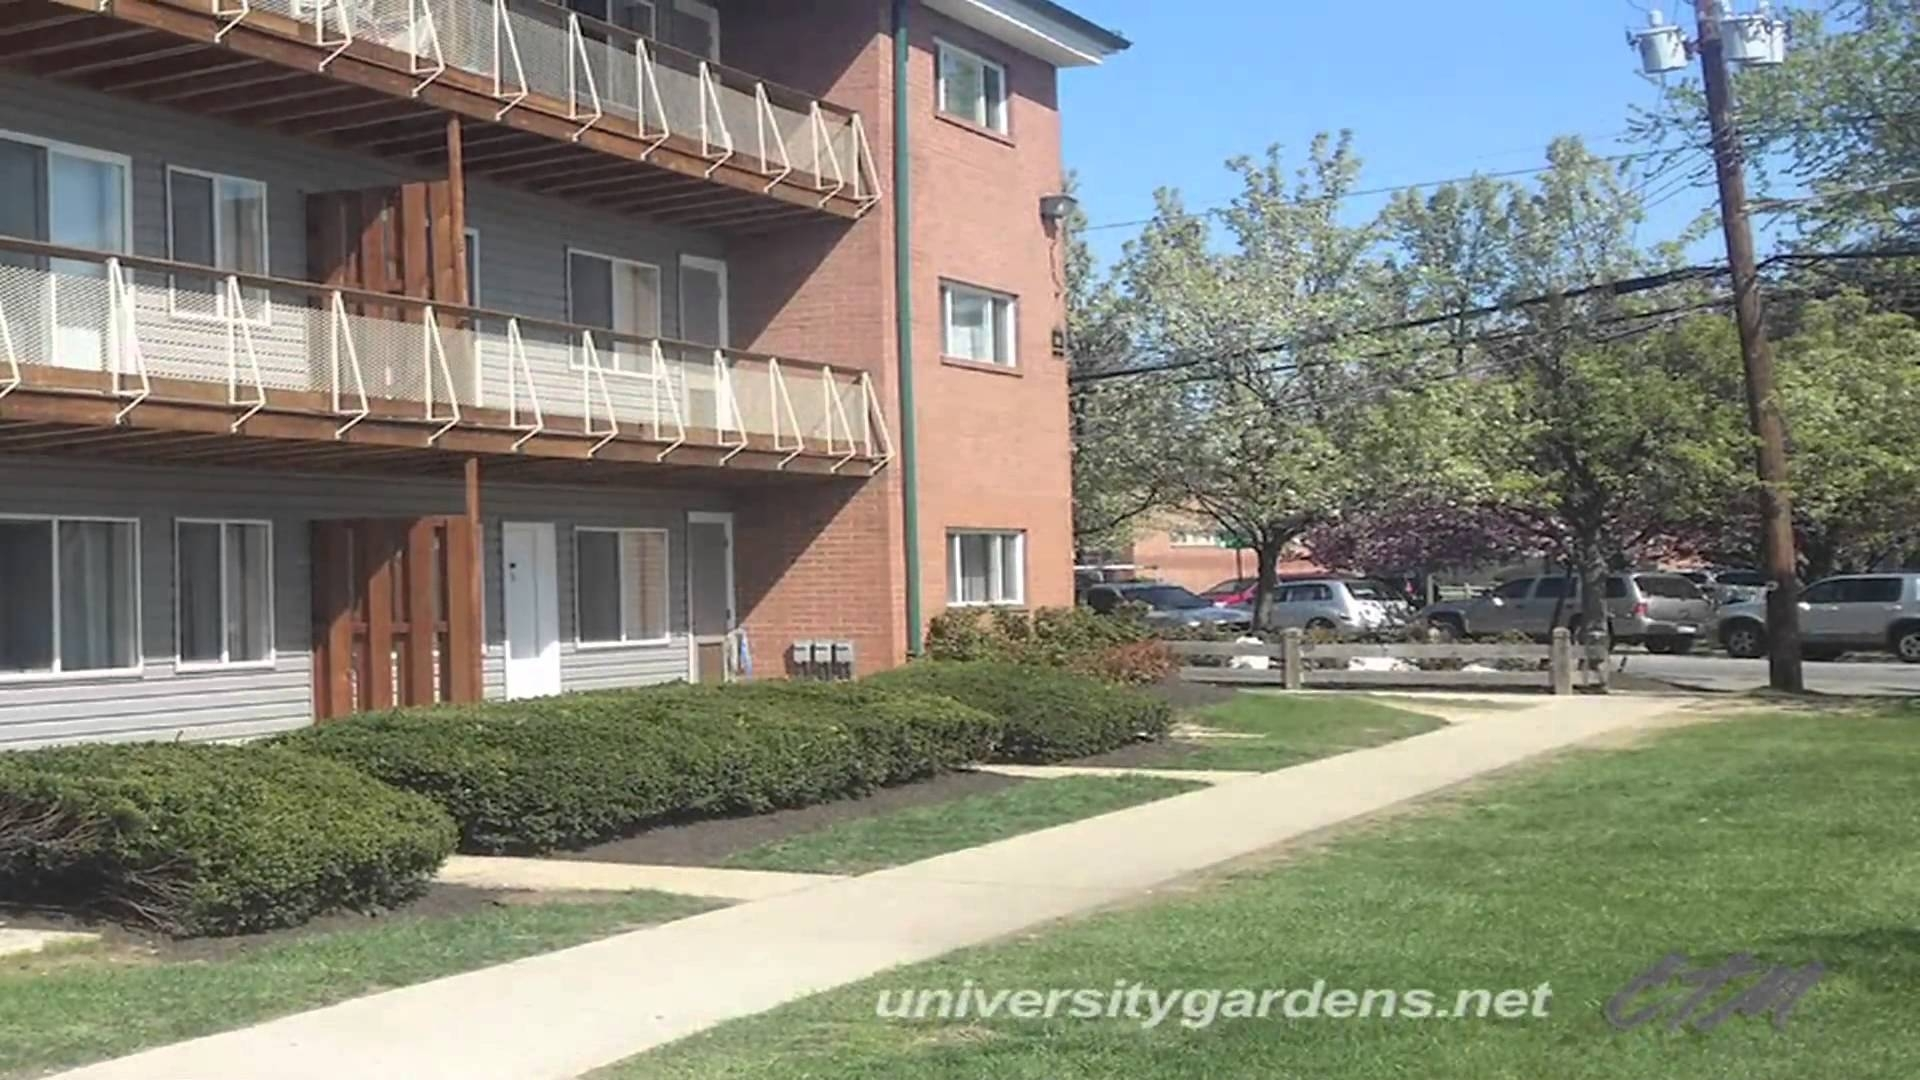 University Gardens | Adelphi Md Apartments | Southern Management in Campus Gardens Apartments